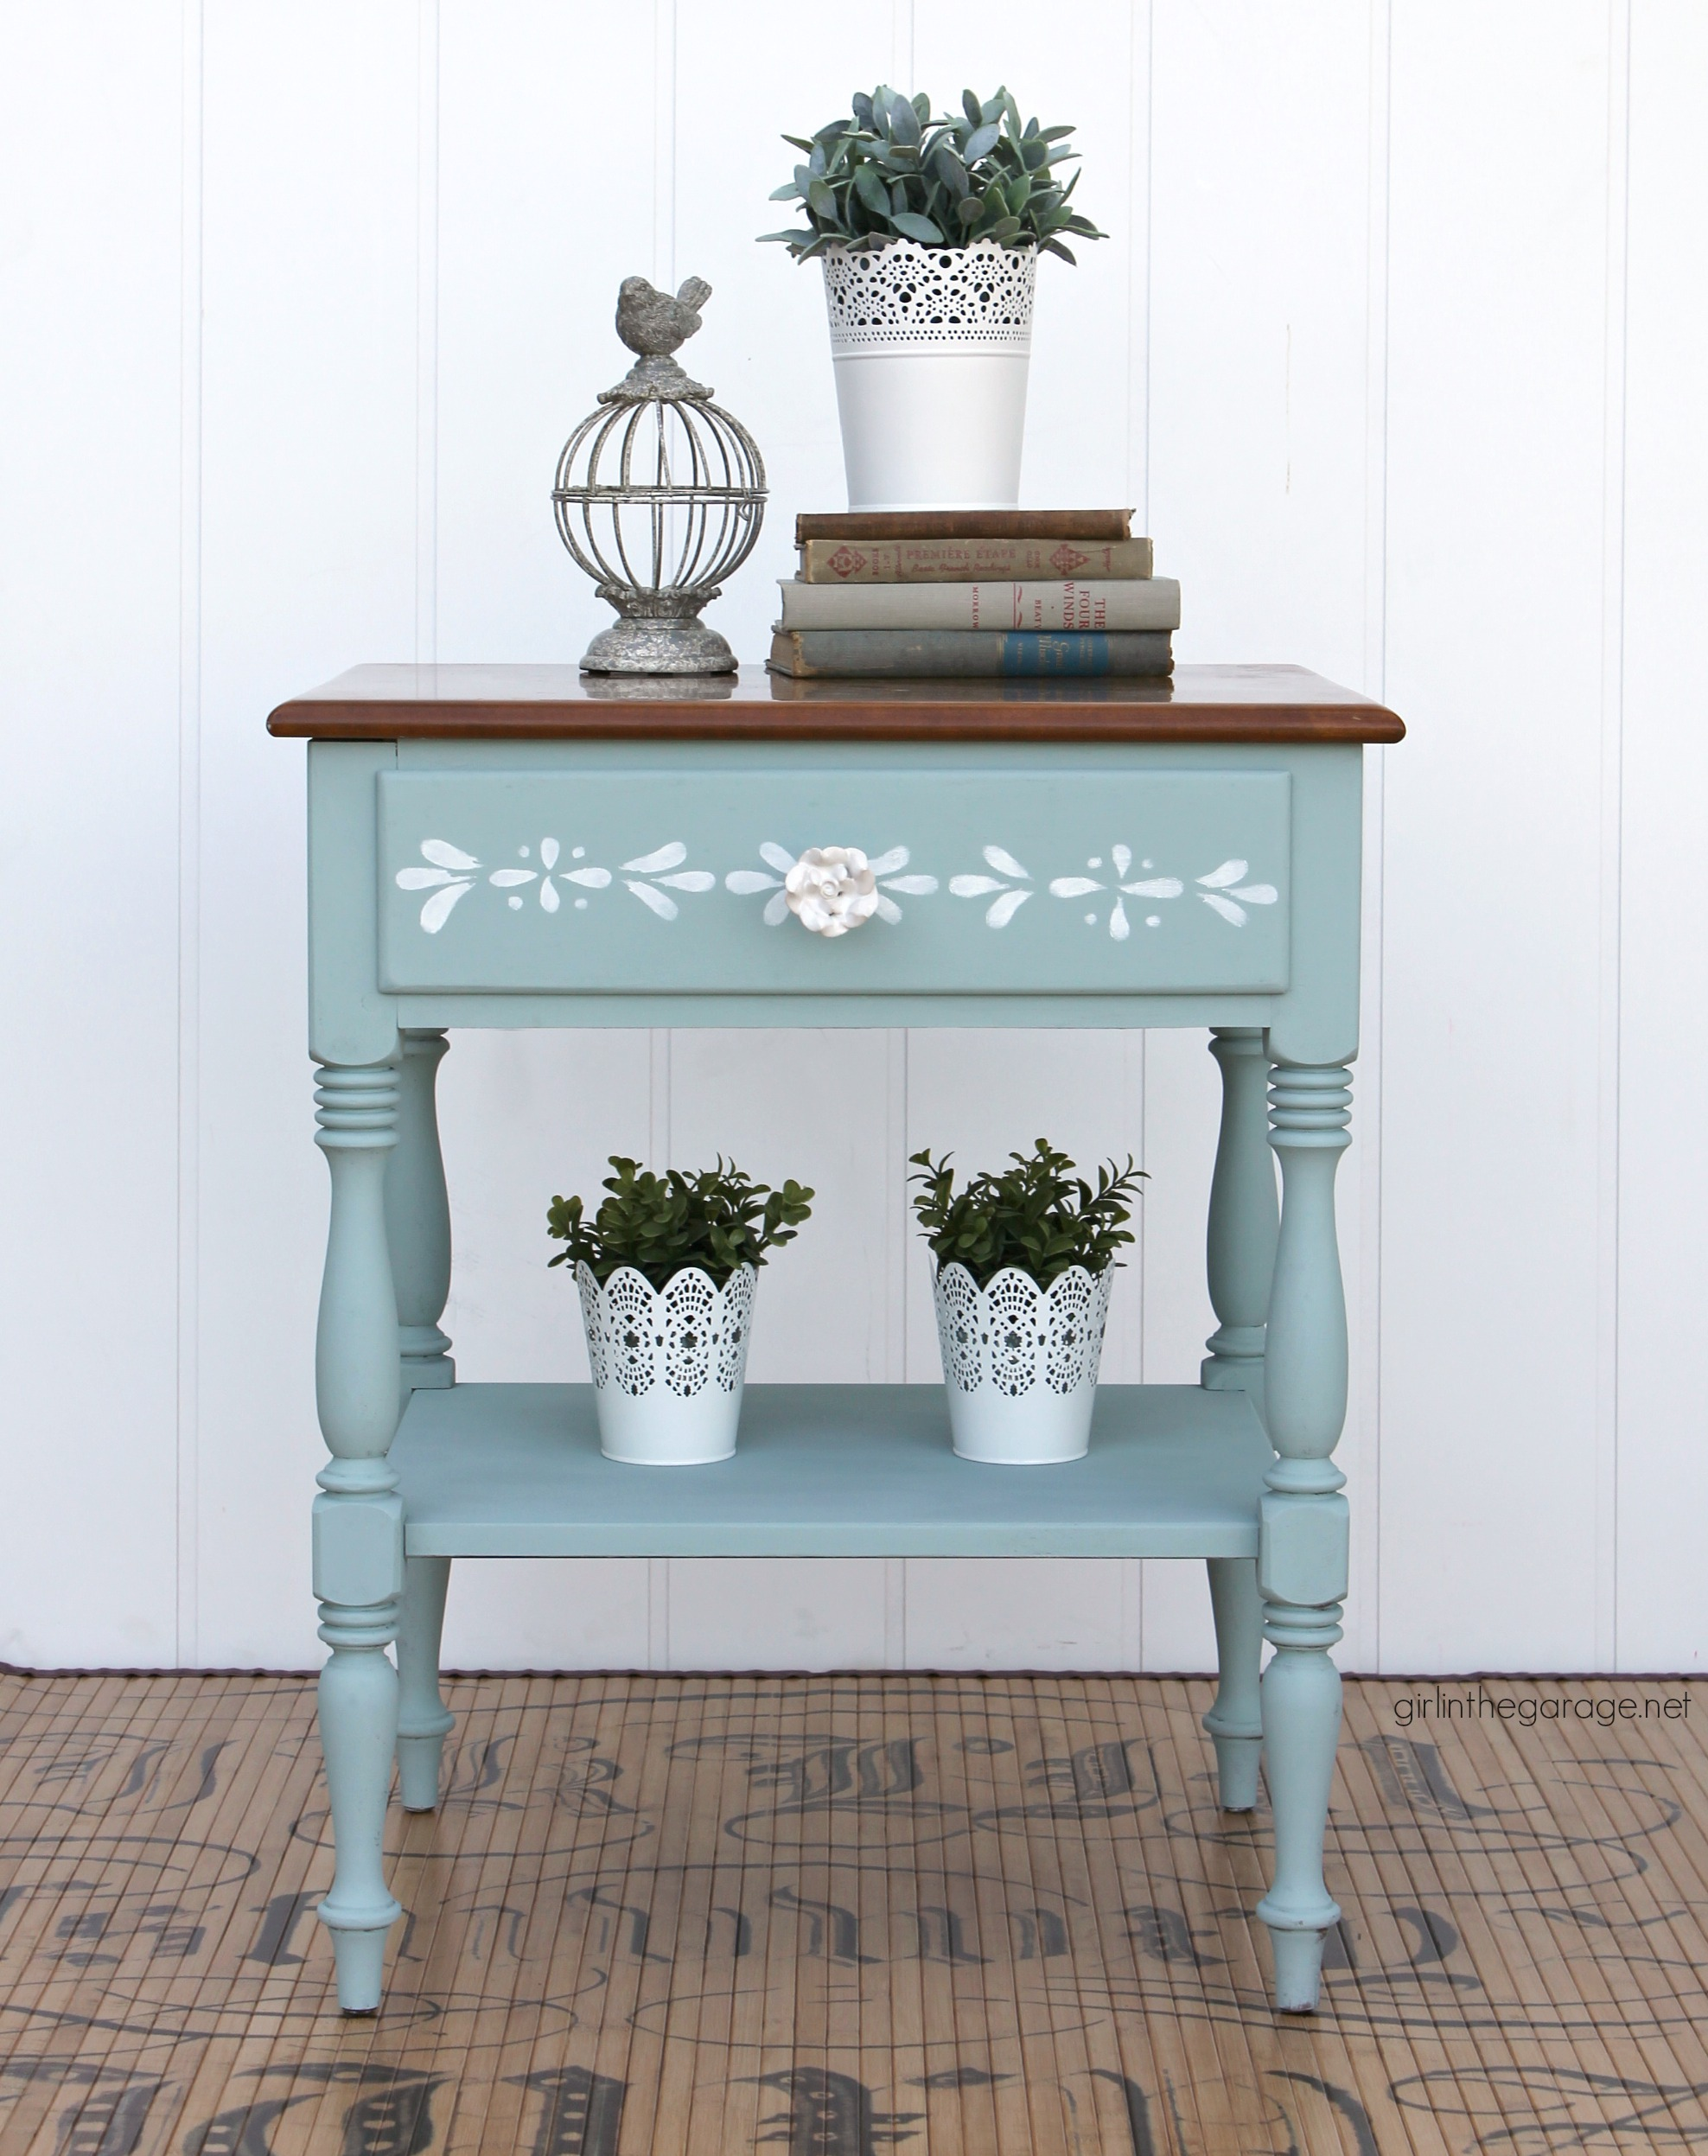 Thrifted Ethan Allen Nightstand Makeover - Girl in the Garage